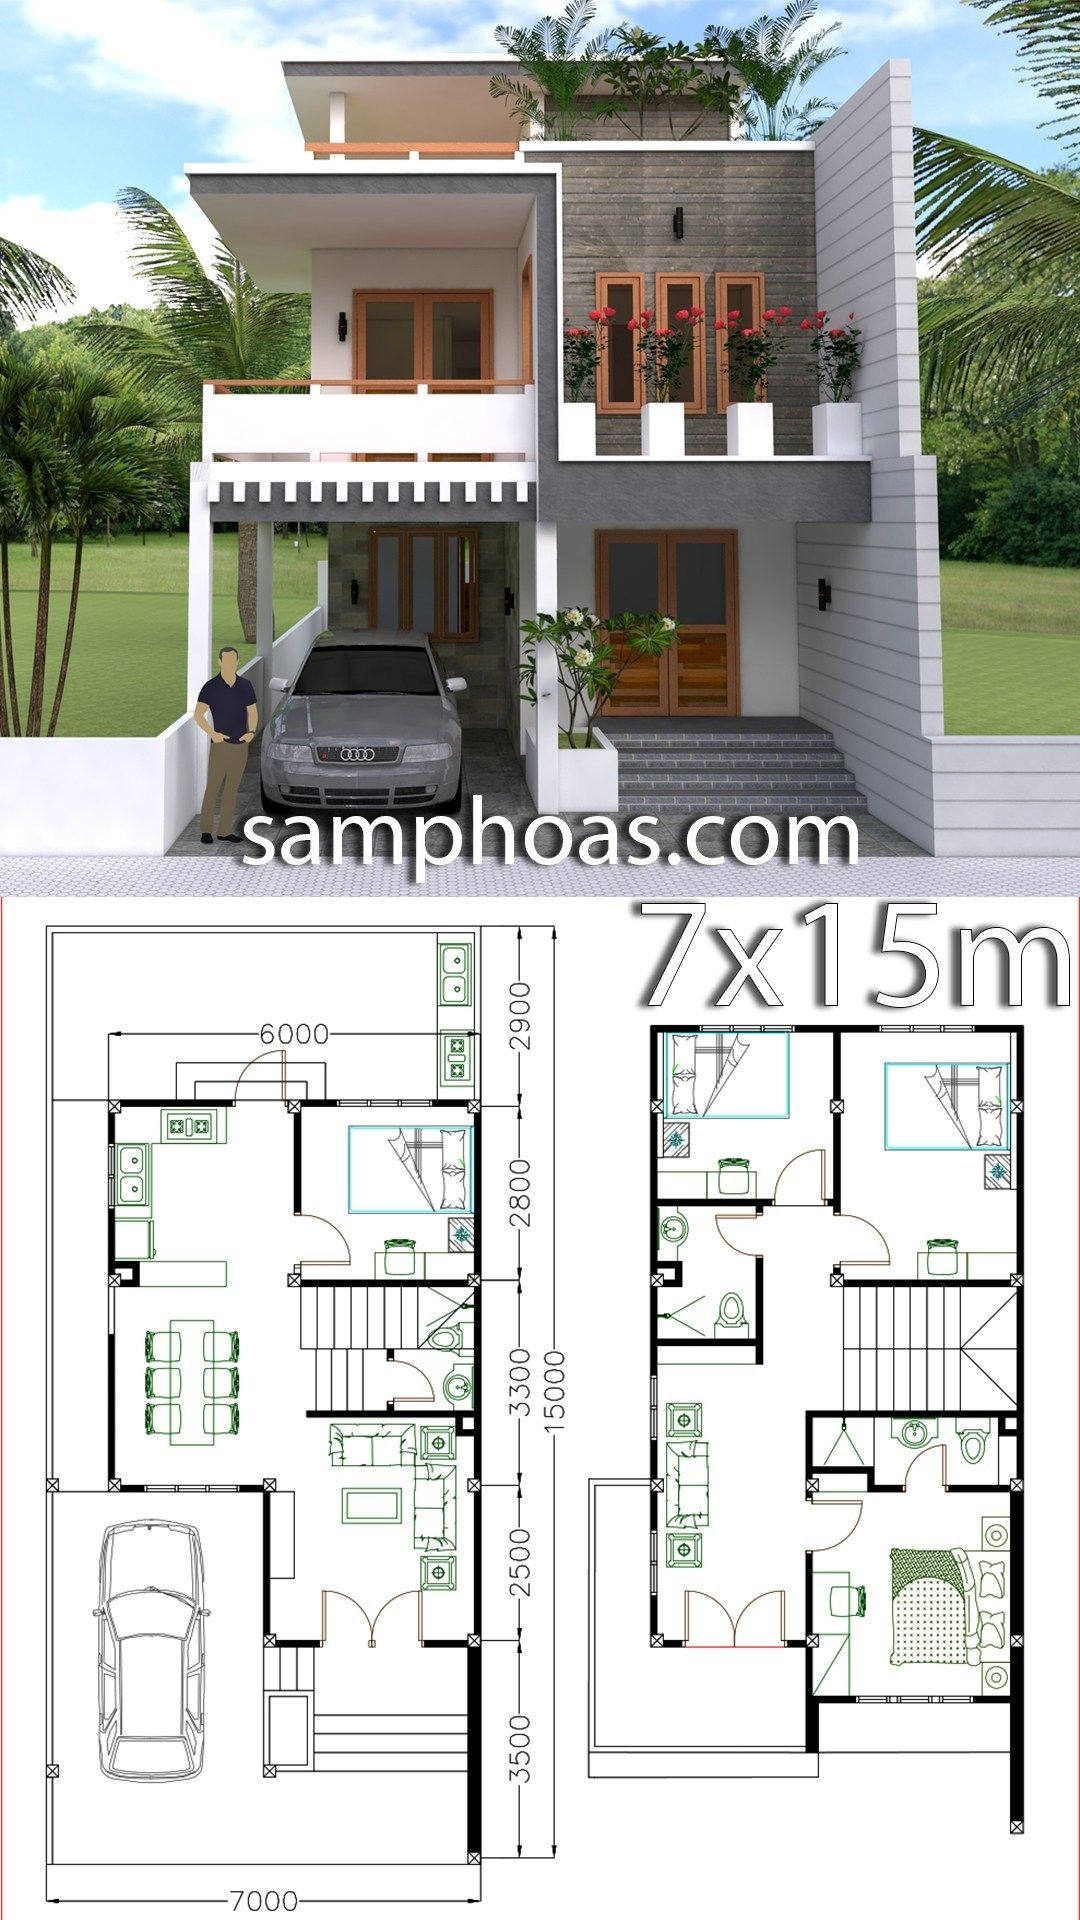 Home Design Plan 7x15m With 4 Bedrooms Samphoas Plansearch Duplex House Design House Designs Exterior Small House Design